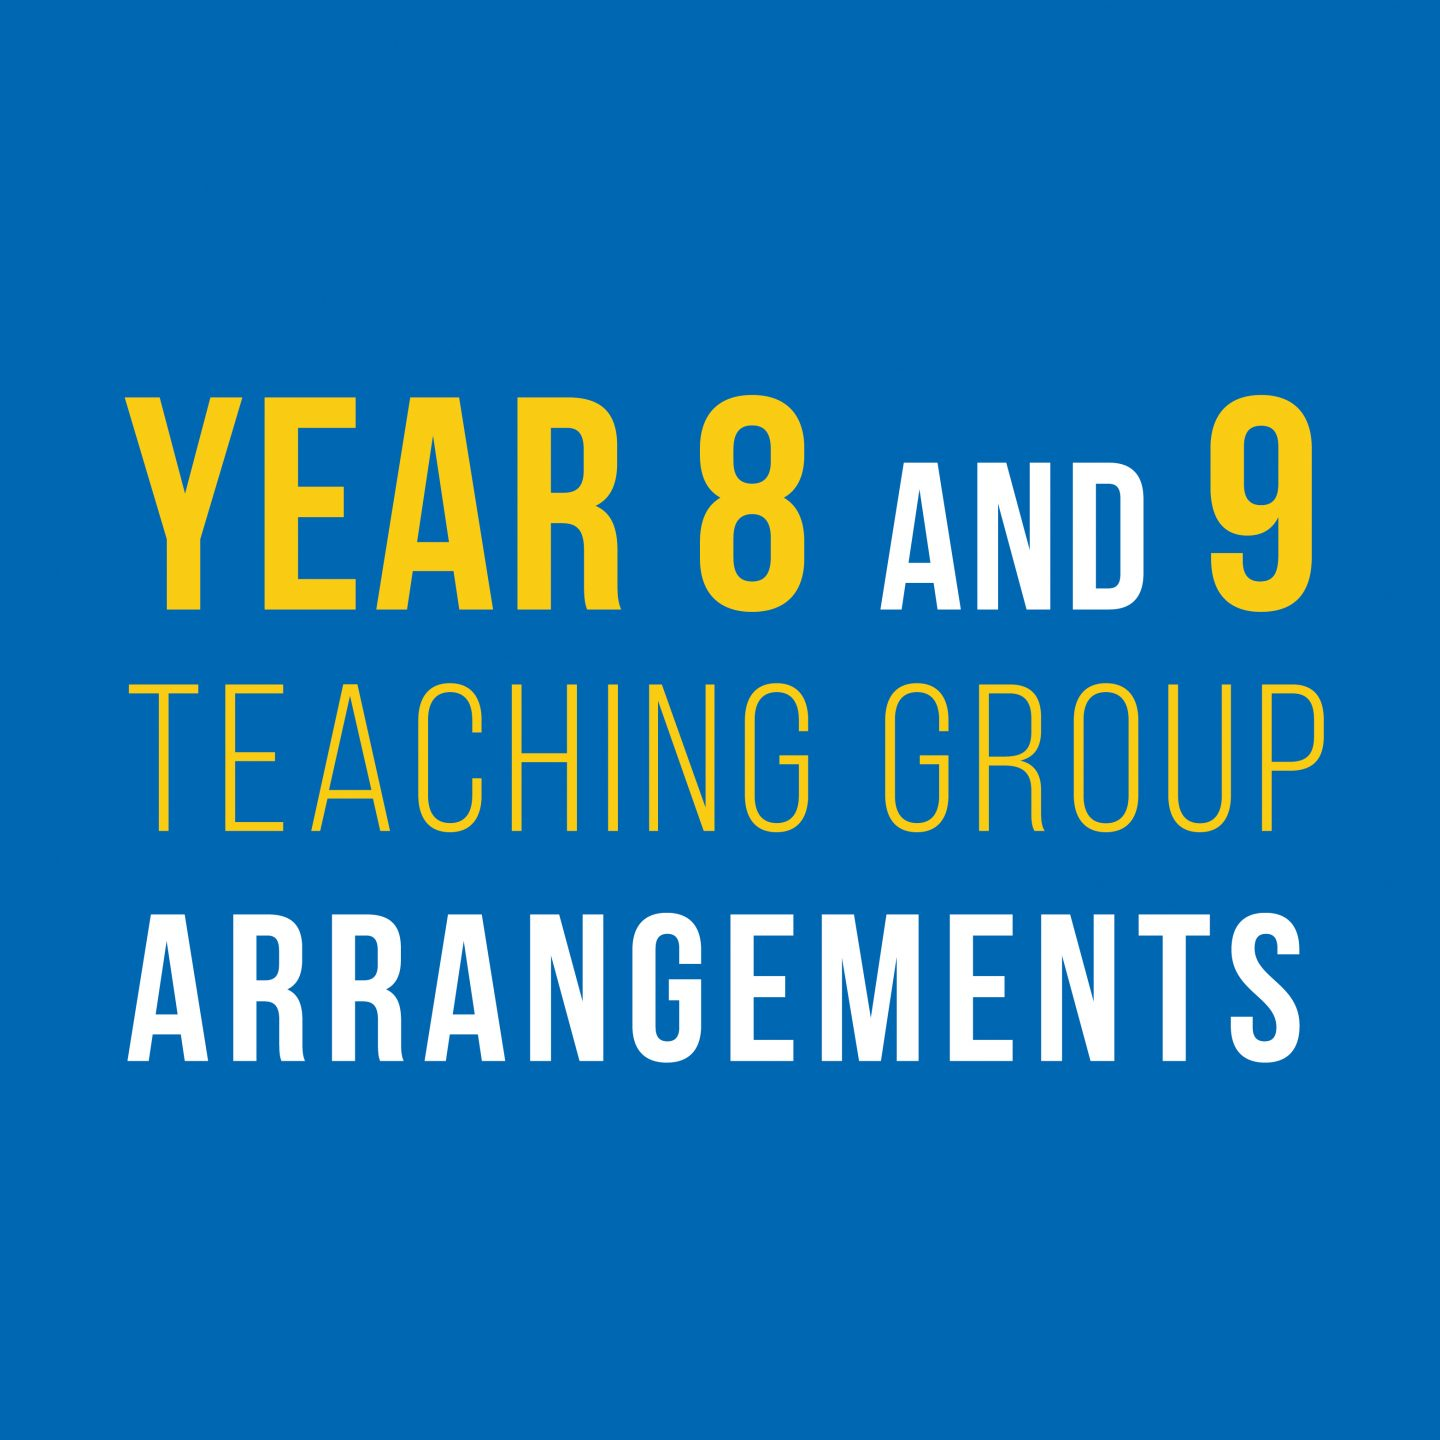 Year 8 and 9 Teaching Group Arrangements